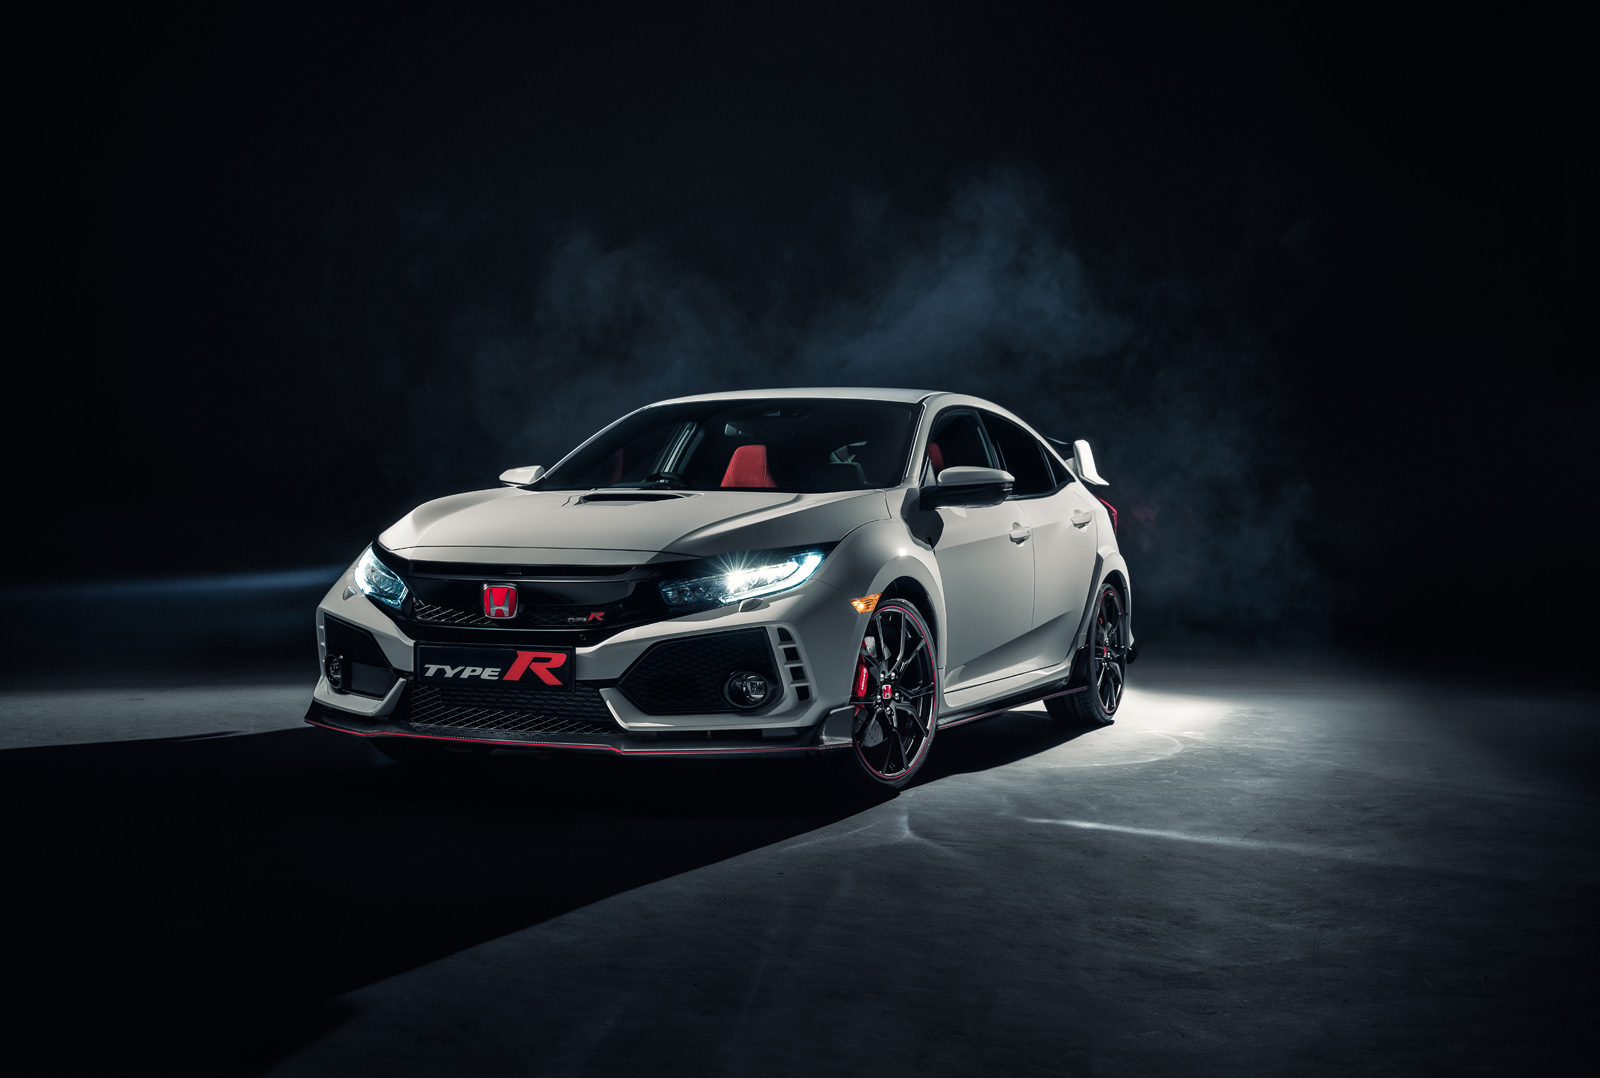 Honda Civic Type R leaked photo reveals $33900 price tag